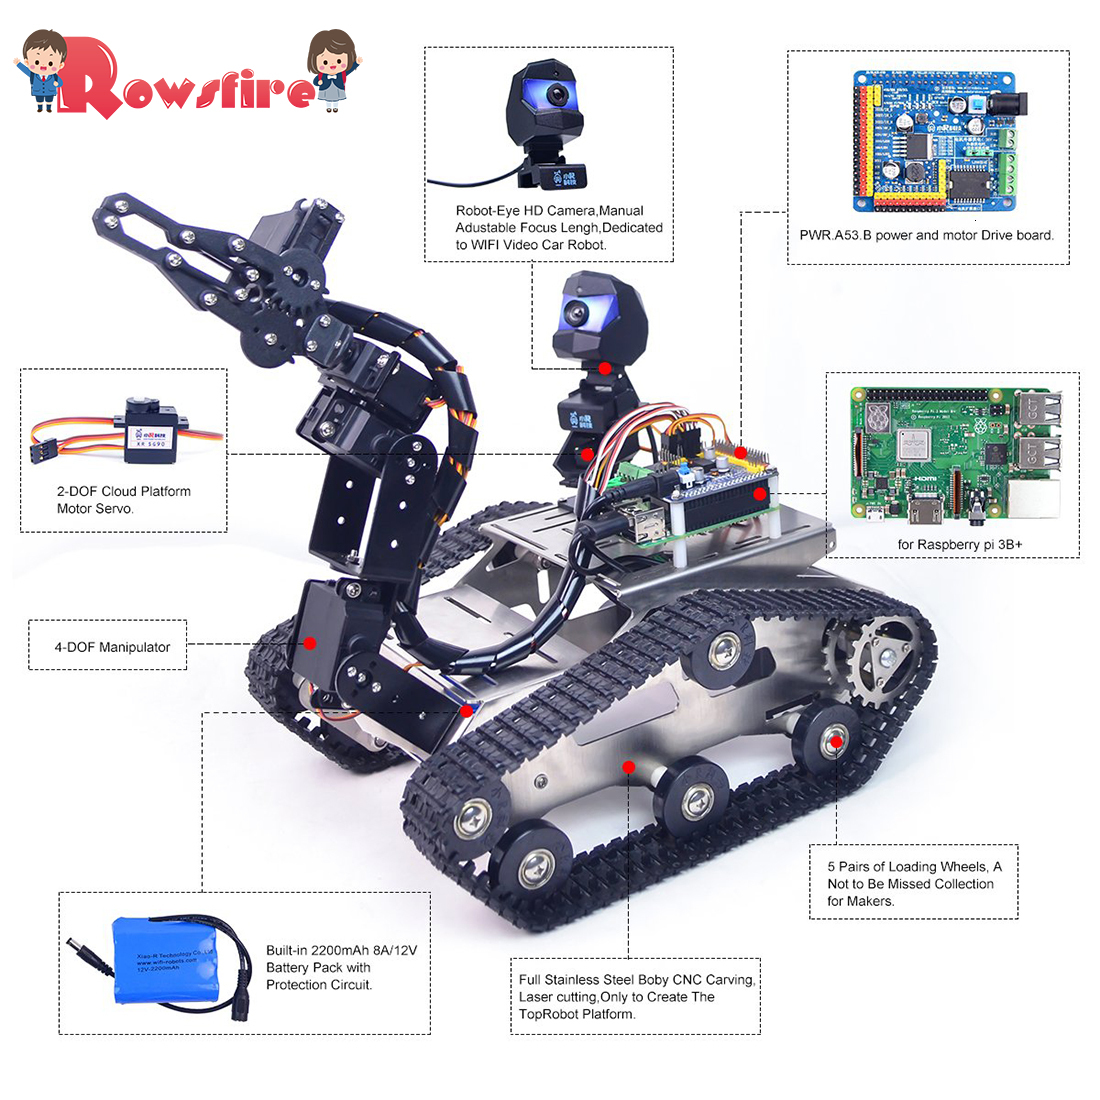 Programmable TH WiFi Bluetooth FPV Tank Robot Car Kit With Arm For Raspberry Pi 3B+ - Line Patrol Obstacle Avoidance Version